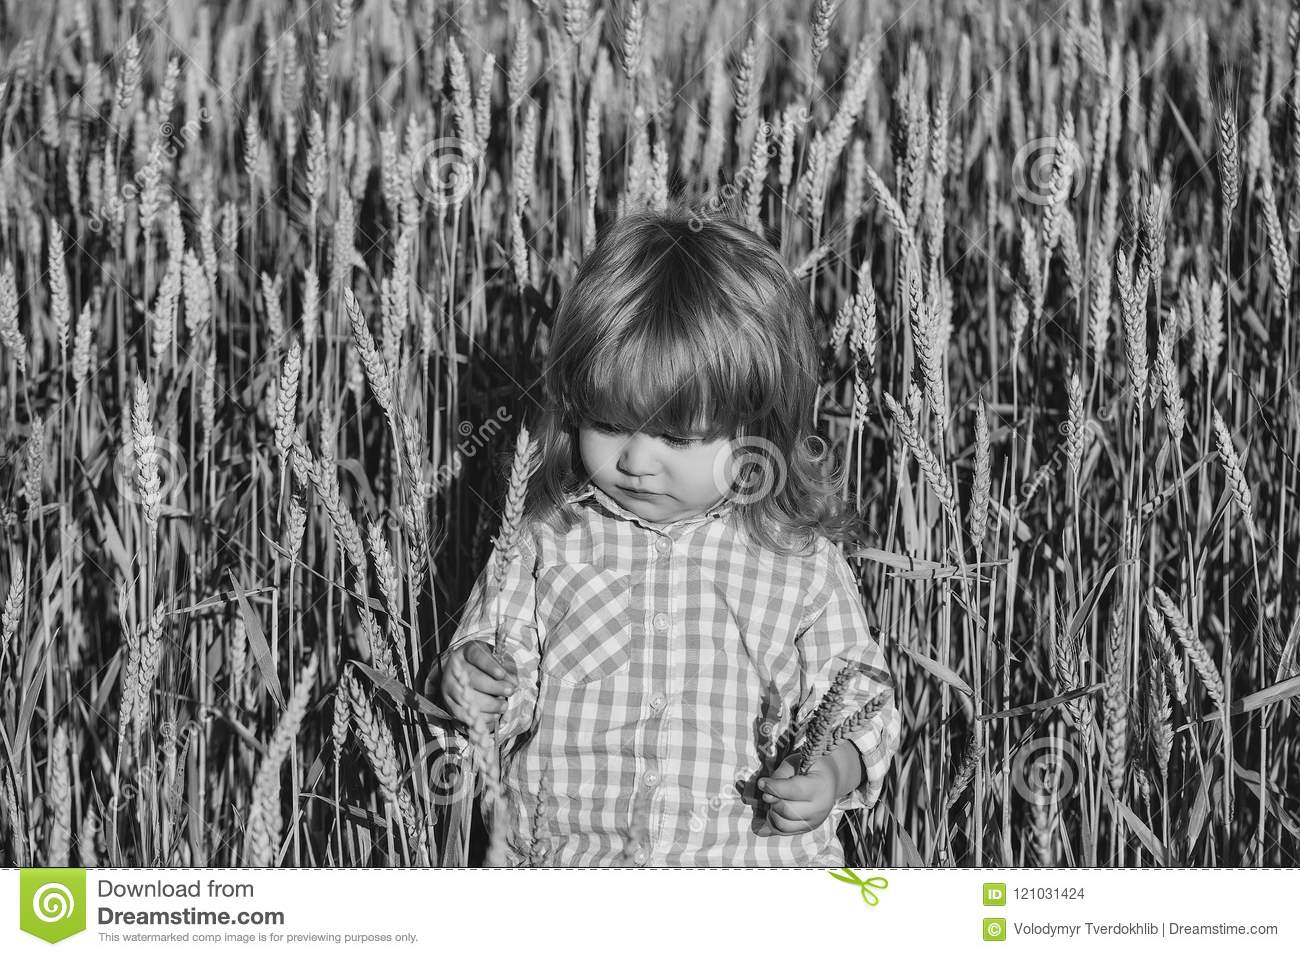 Spikelets on long hair